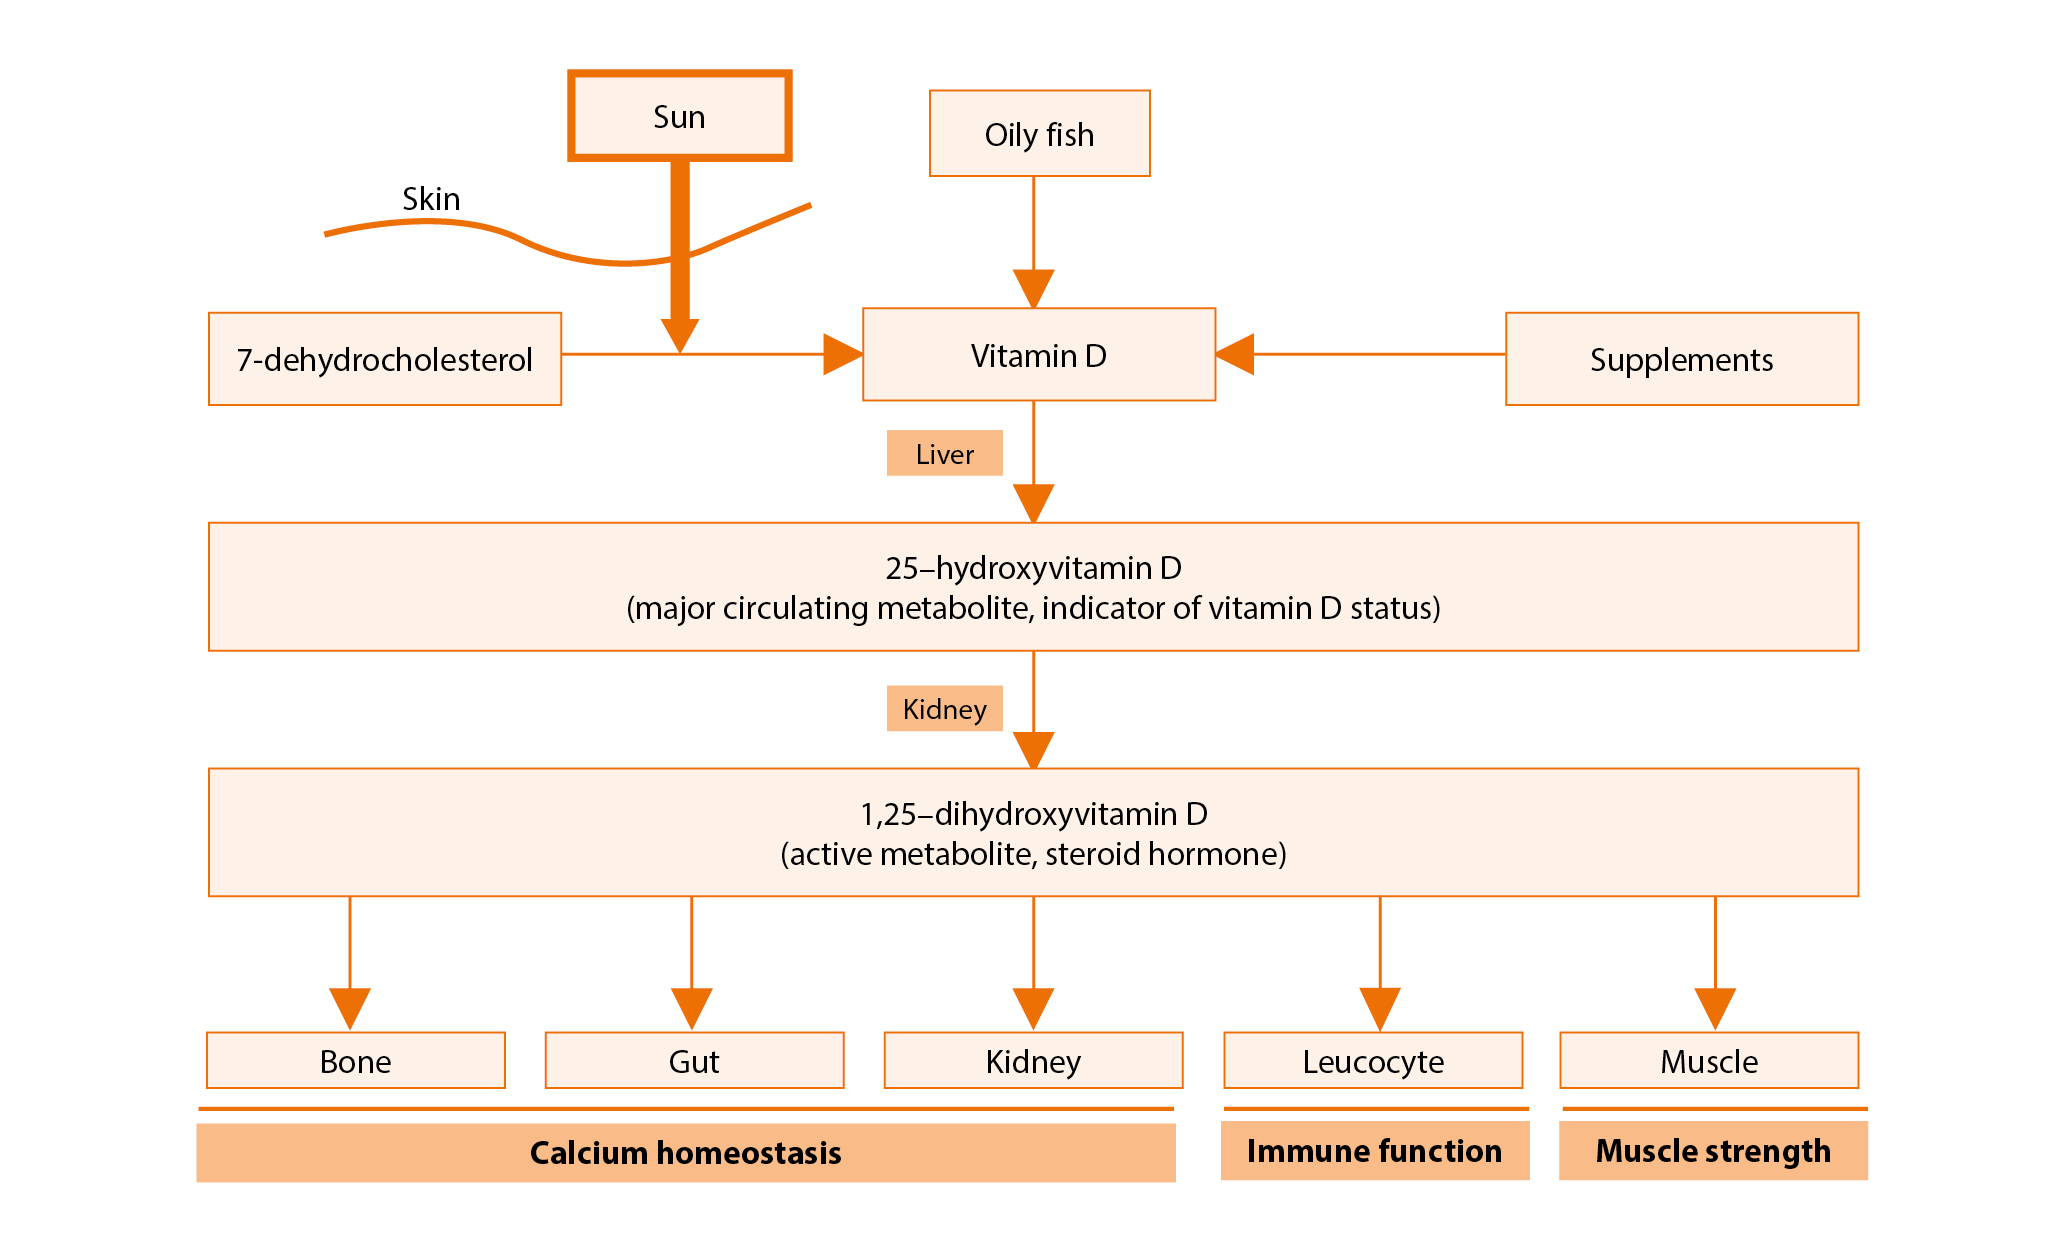 The vitamin D pathway